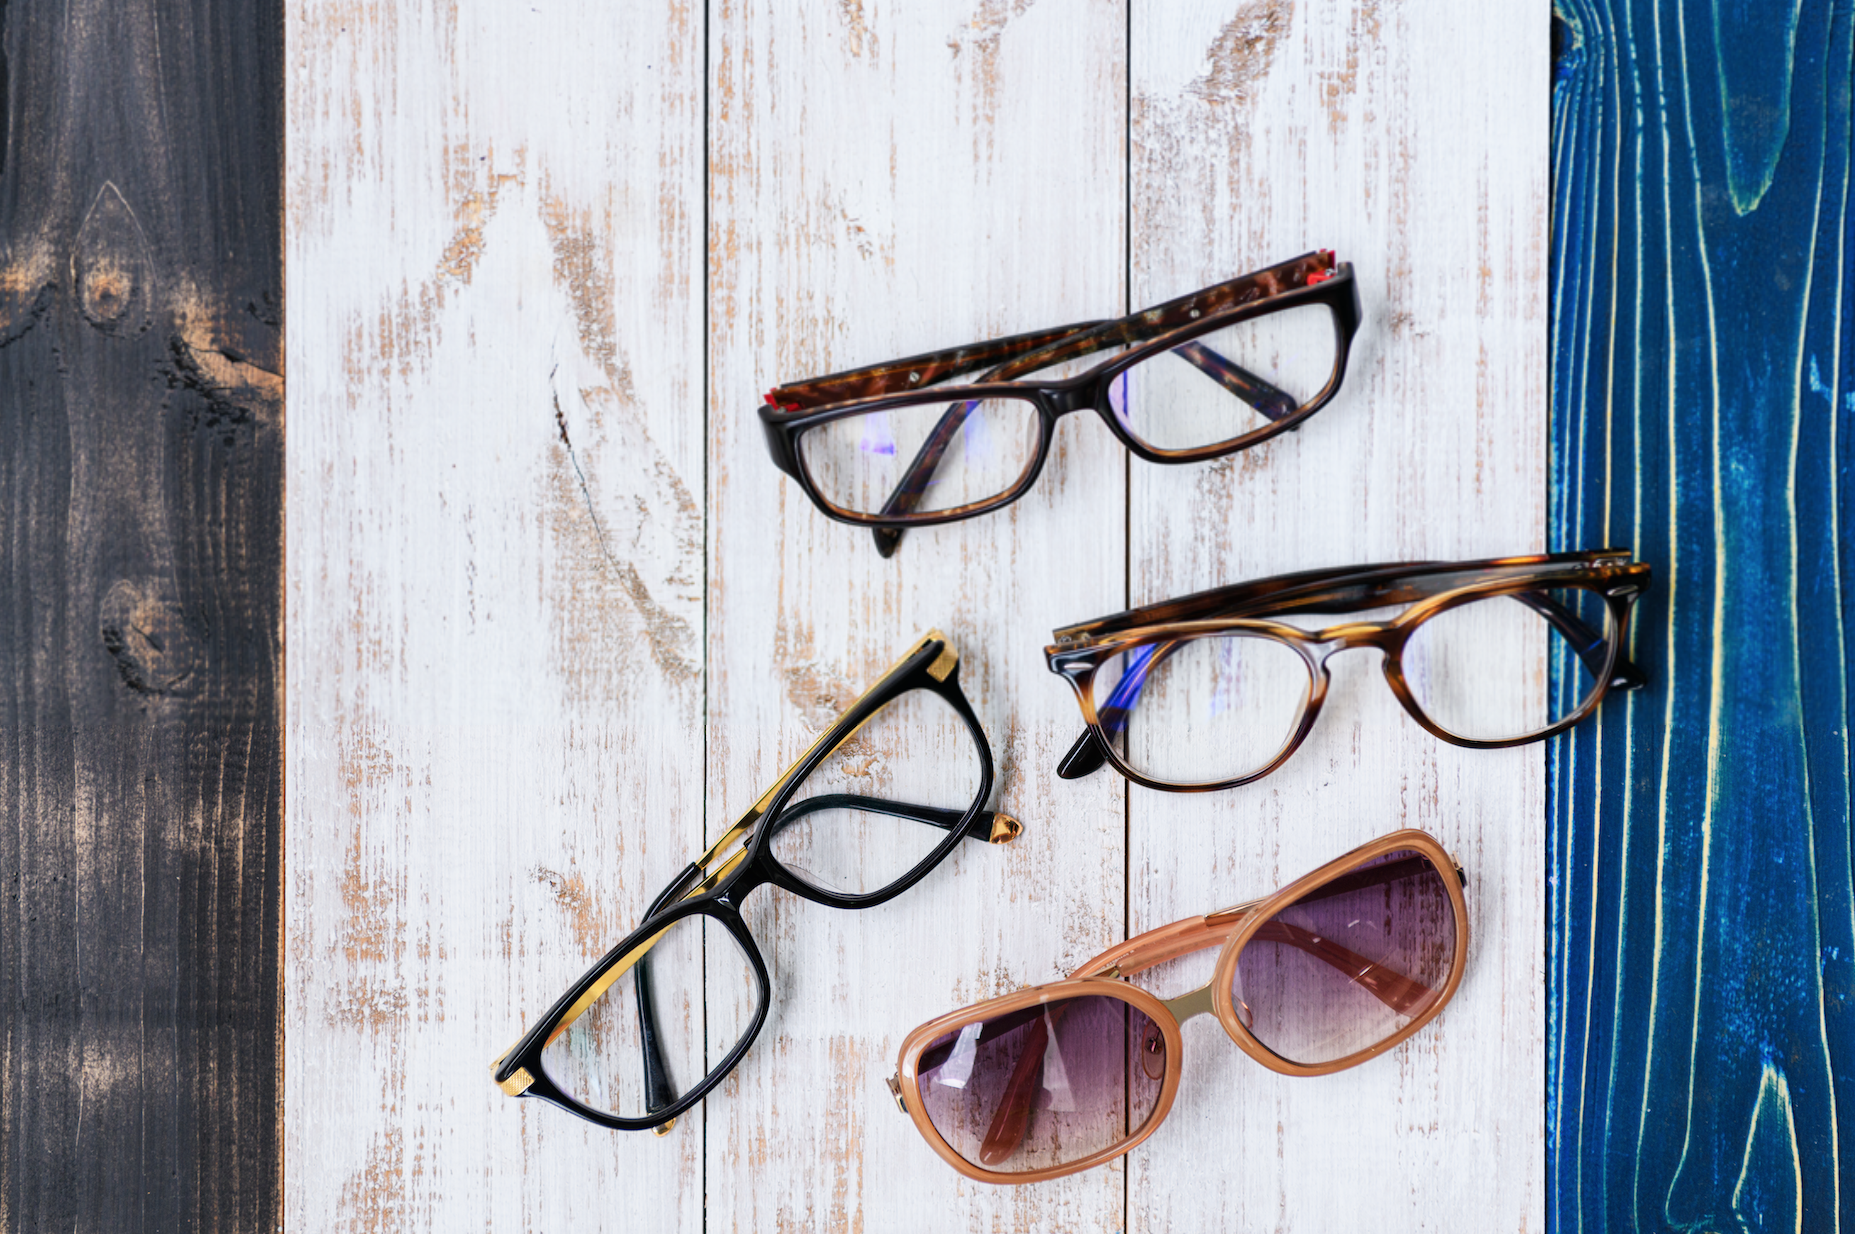 The Top Discount Eyeglass Companies are Here!